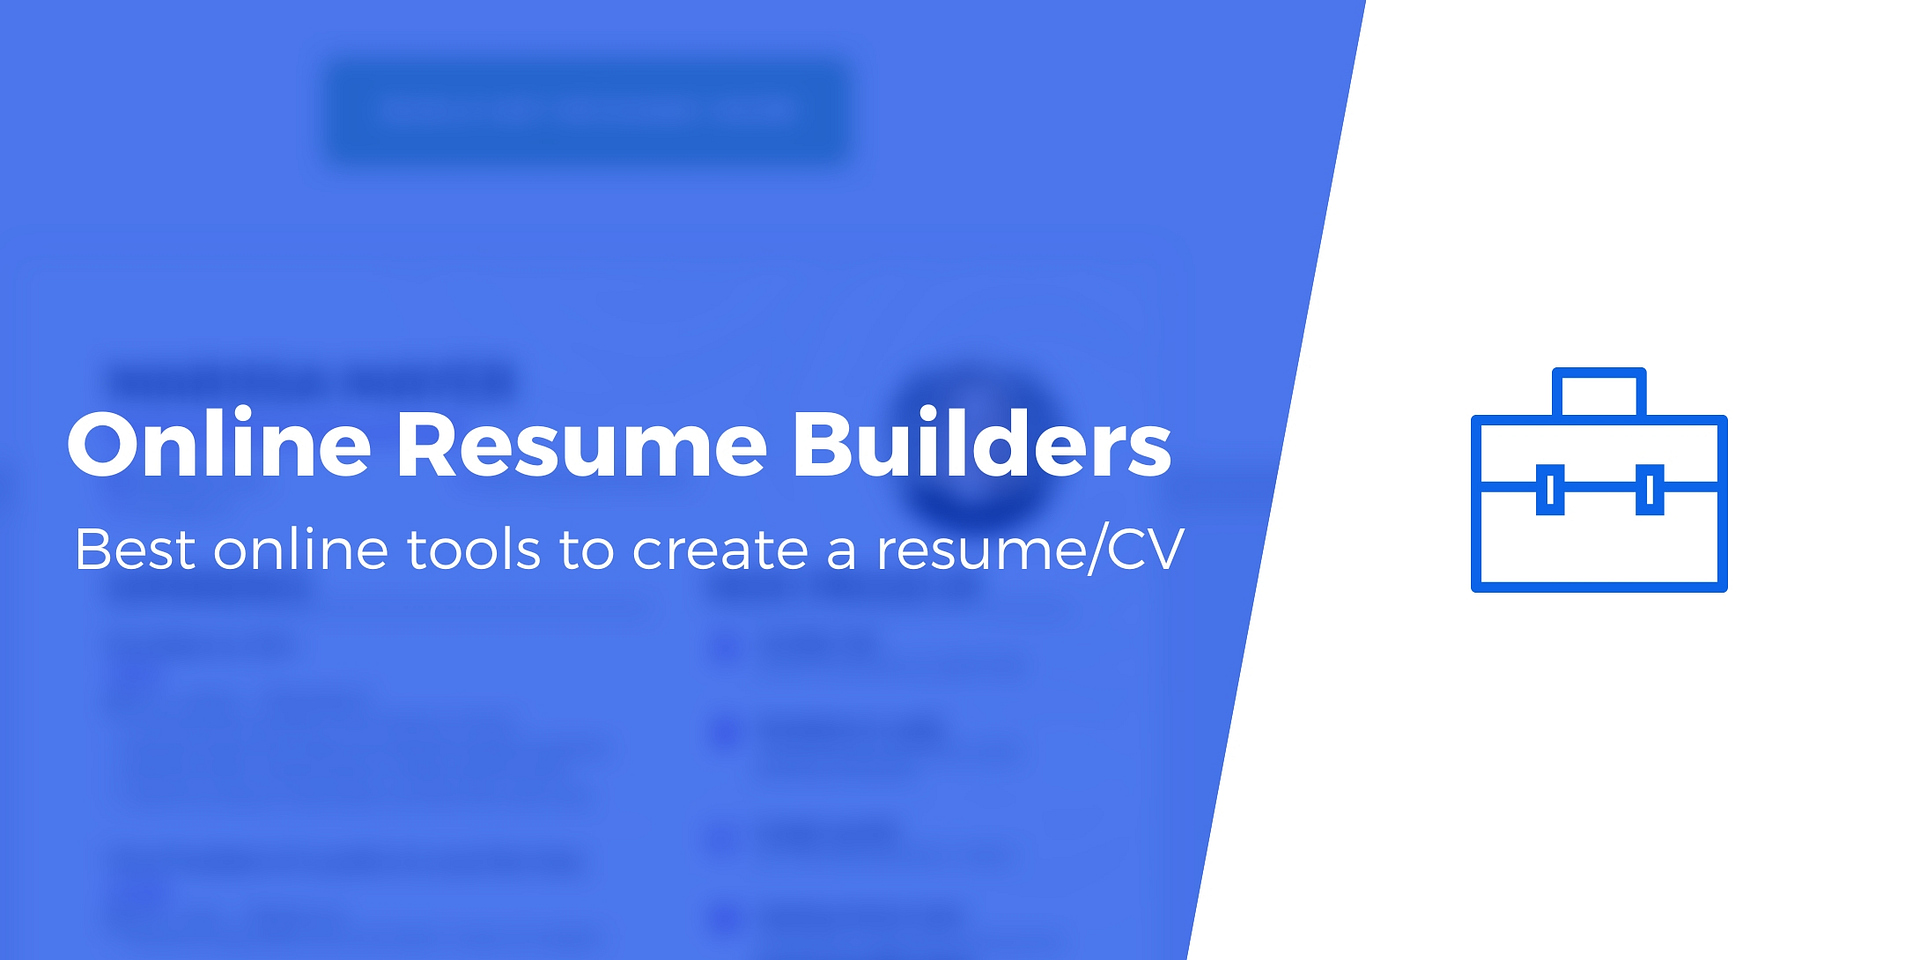 5 Best Resume Builder Tools To Help You Get Your Next Job